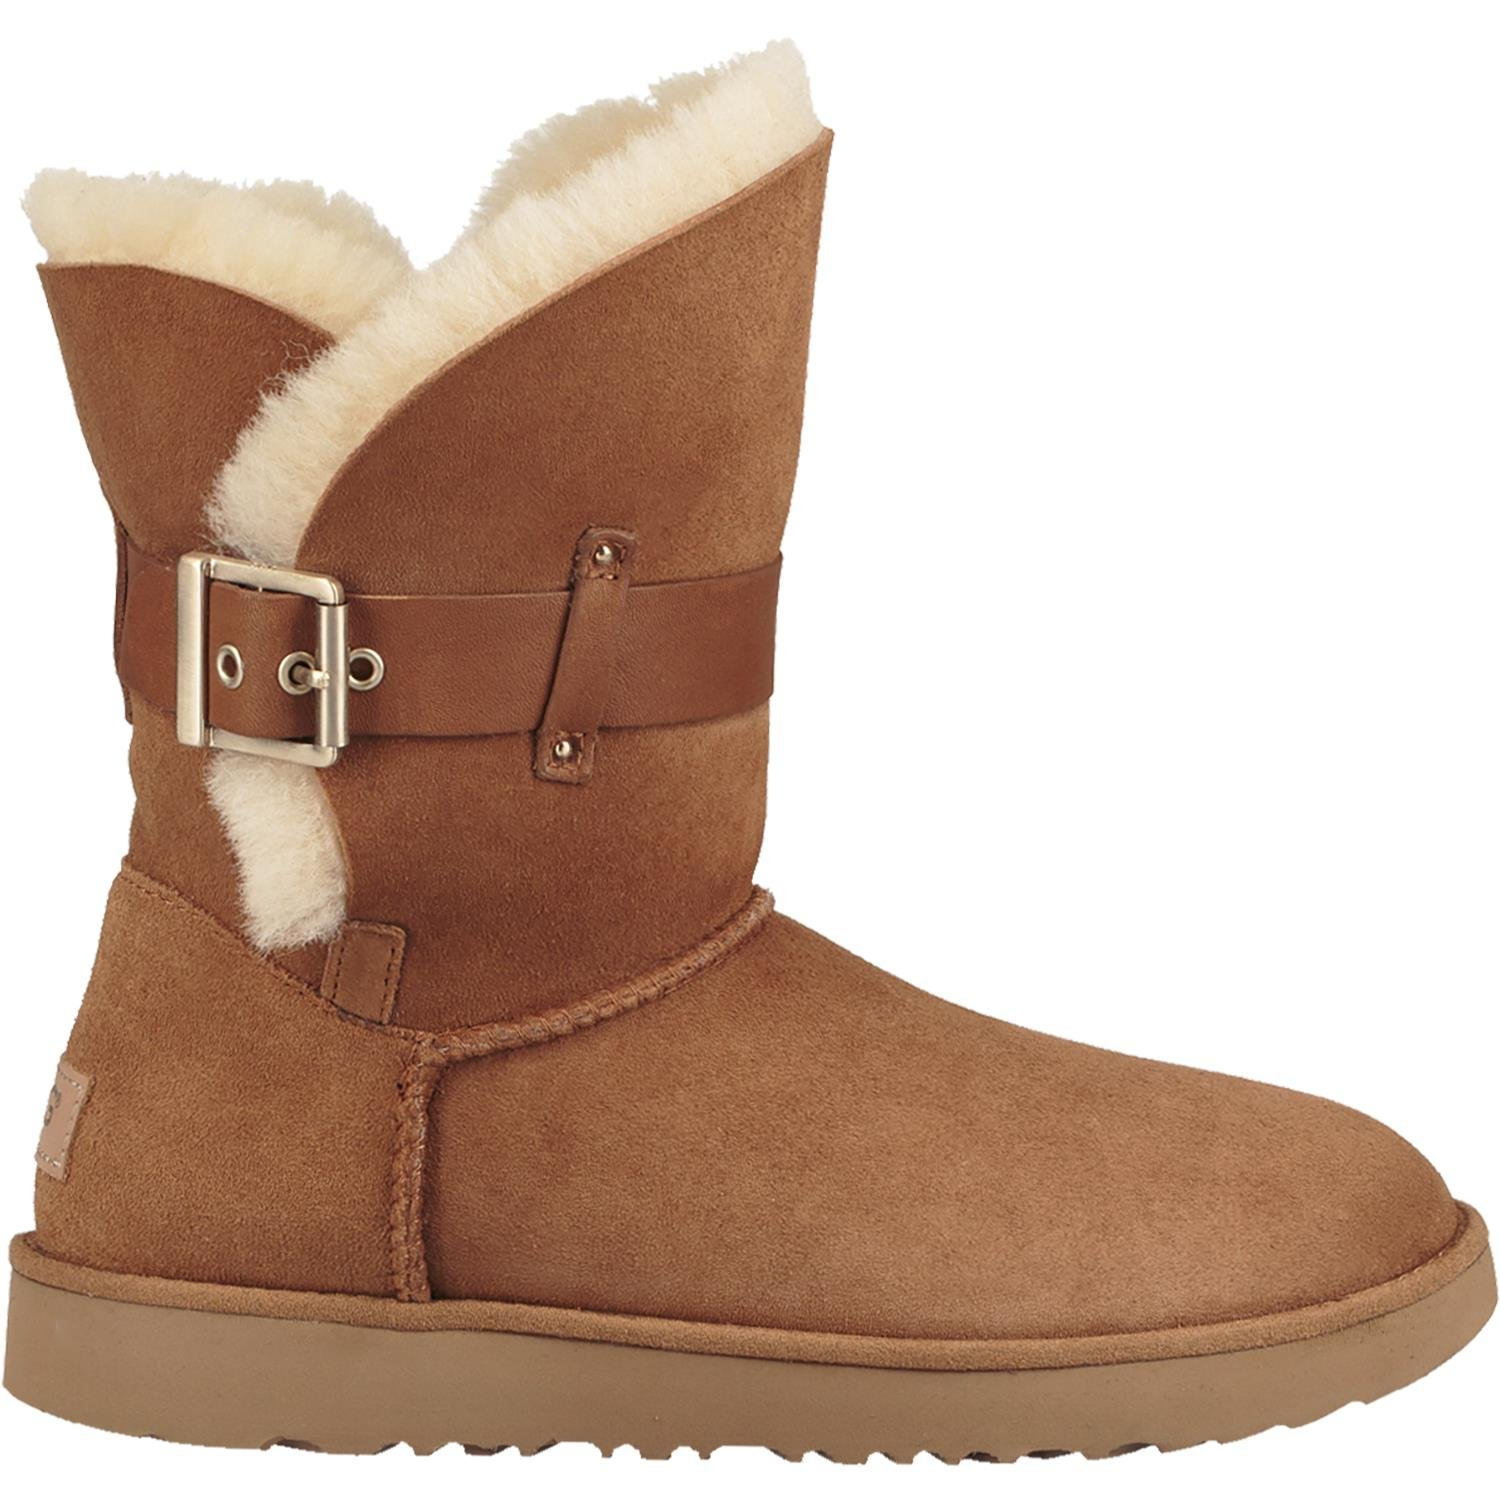 UGG Womens Jaylyn Shearling boot Chestnut Size 9 by UGG